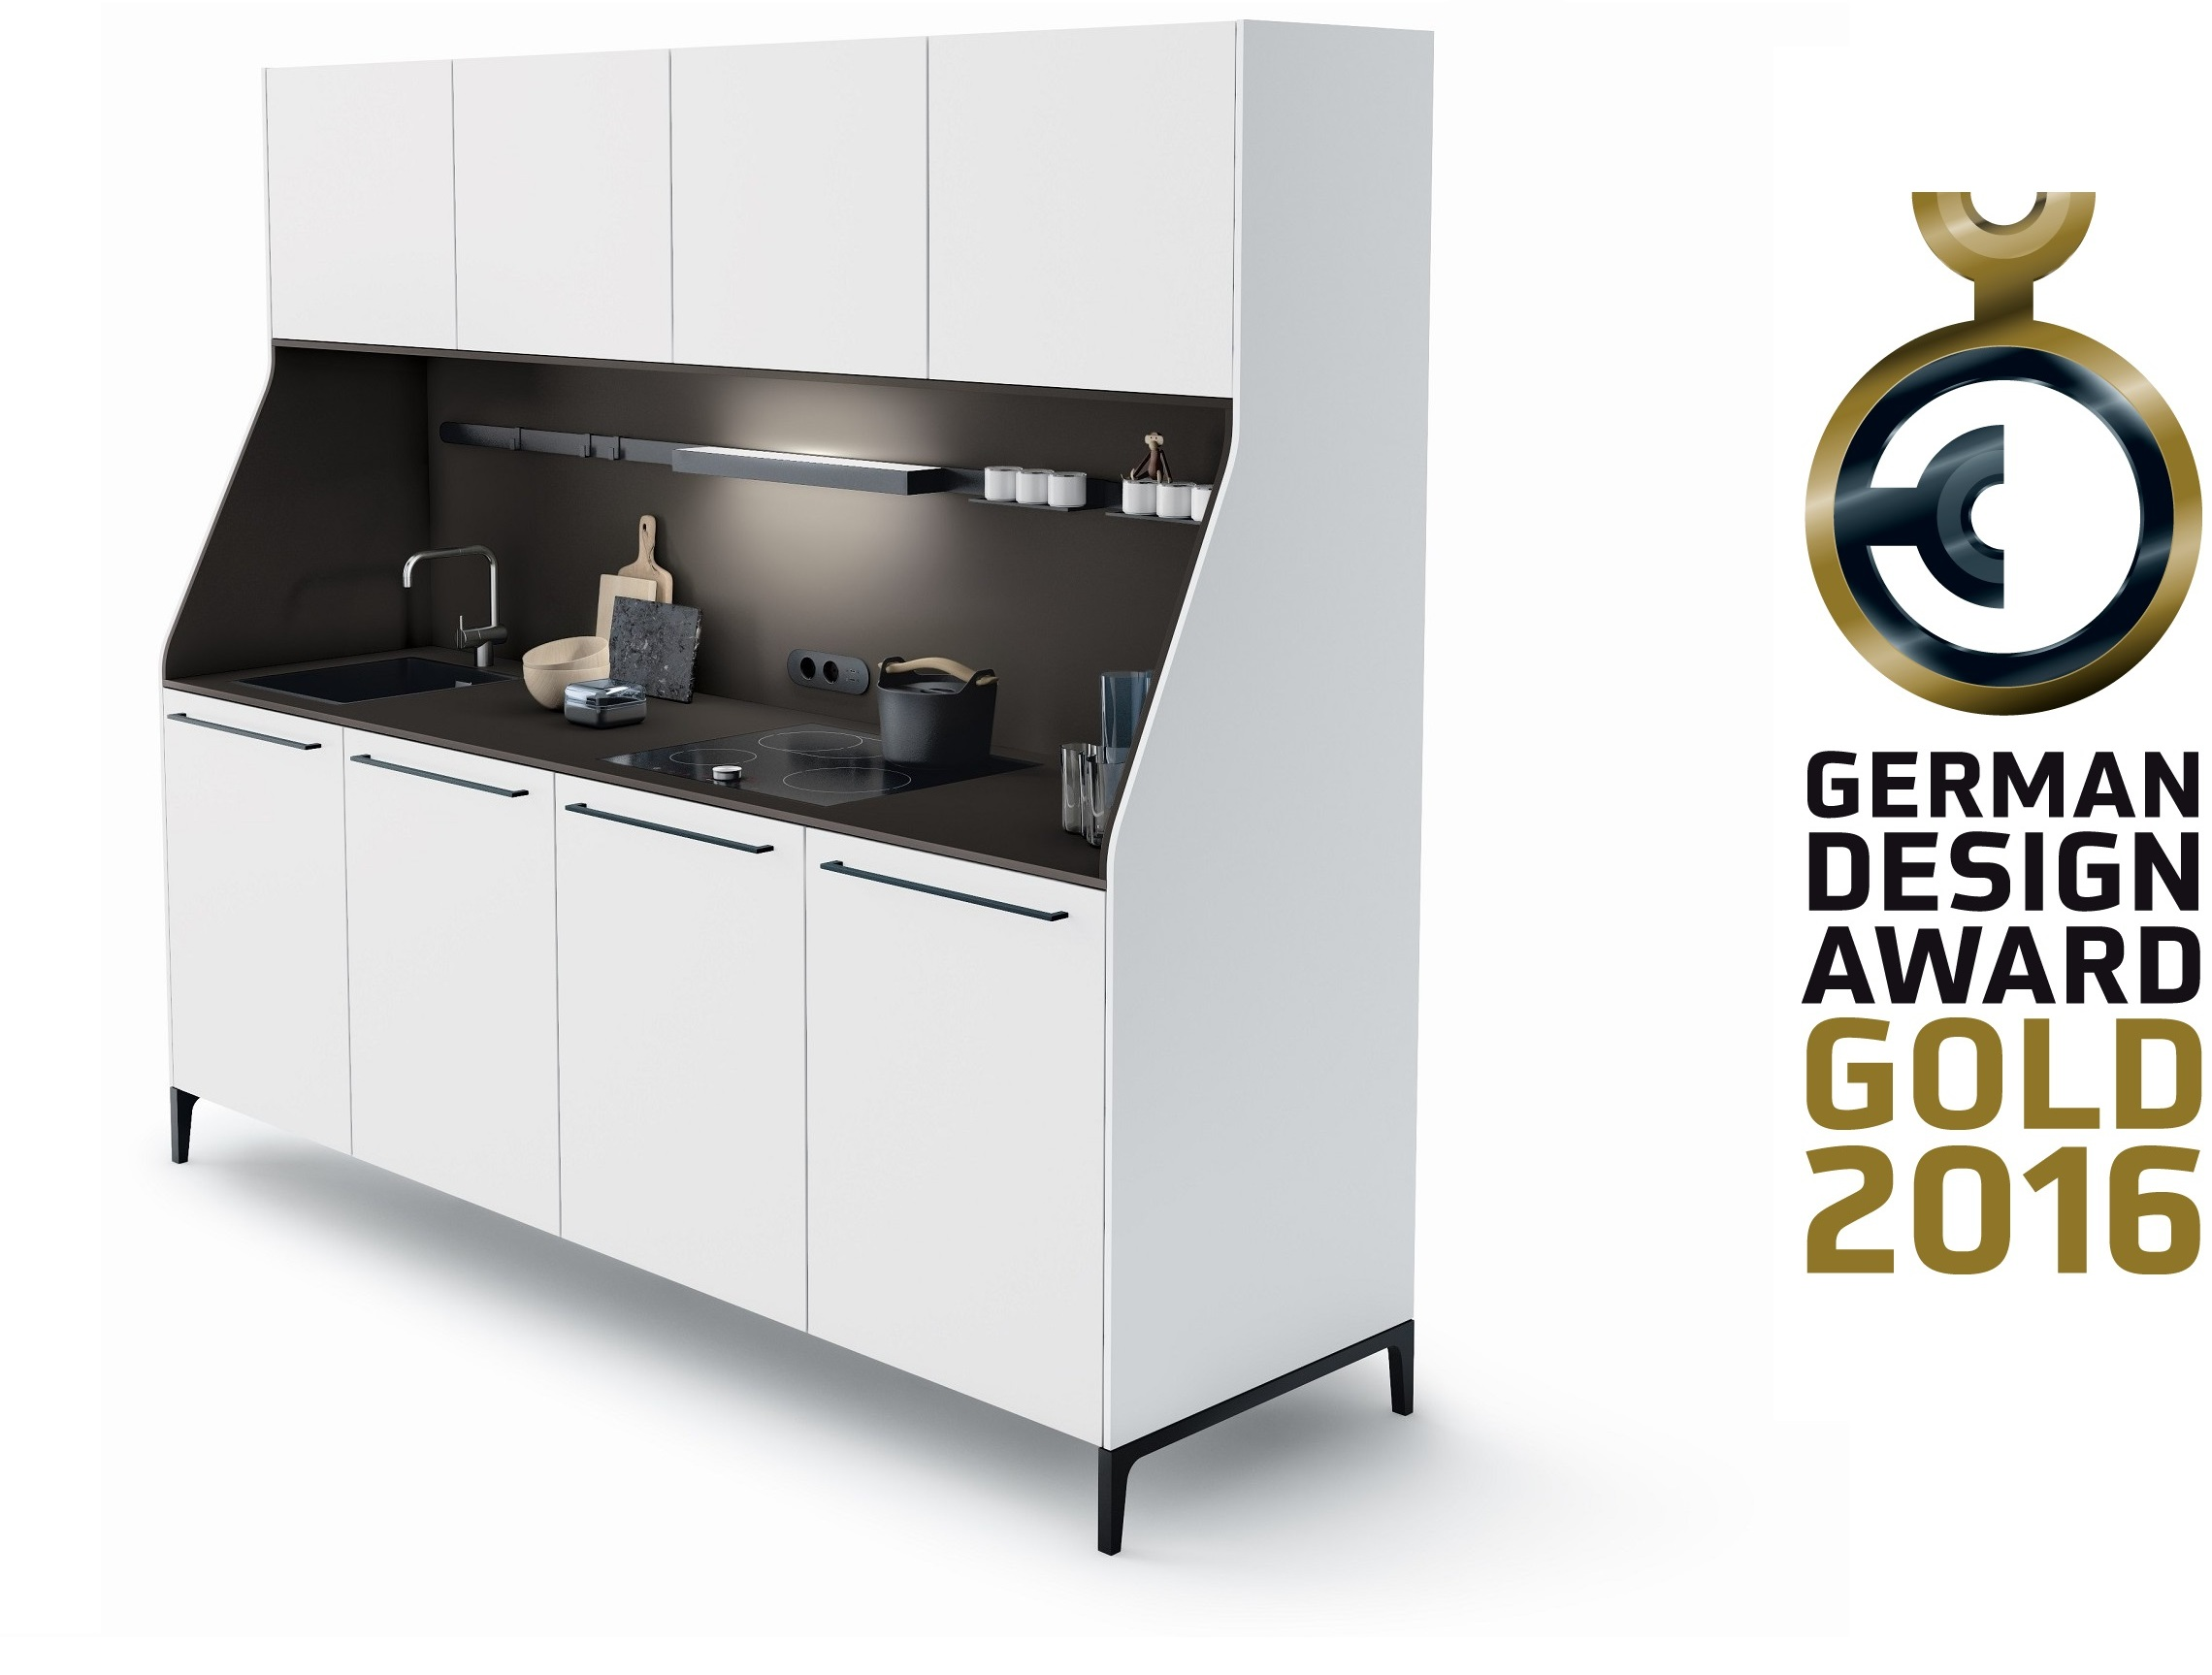 siematic 29 a solitaire among kitchen furniture